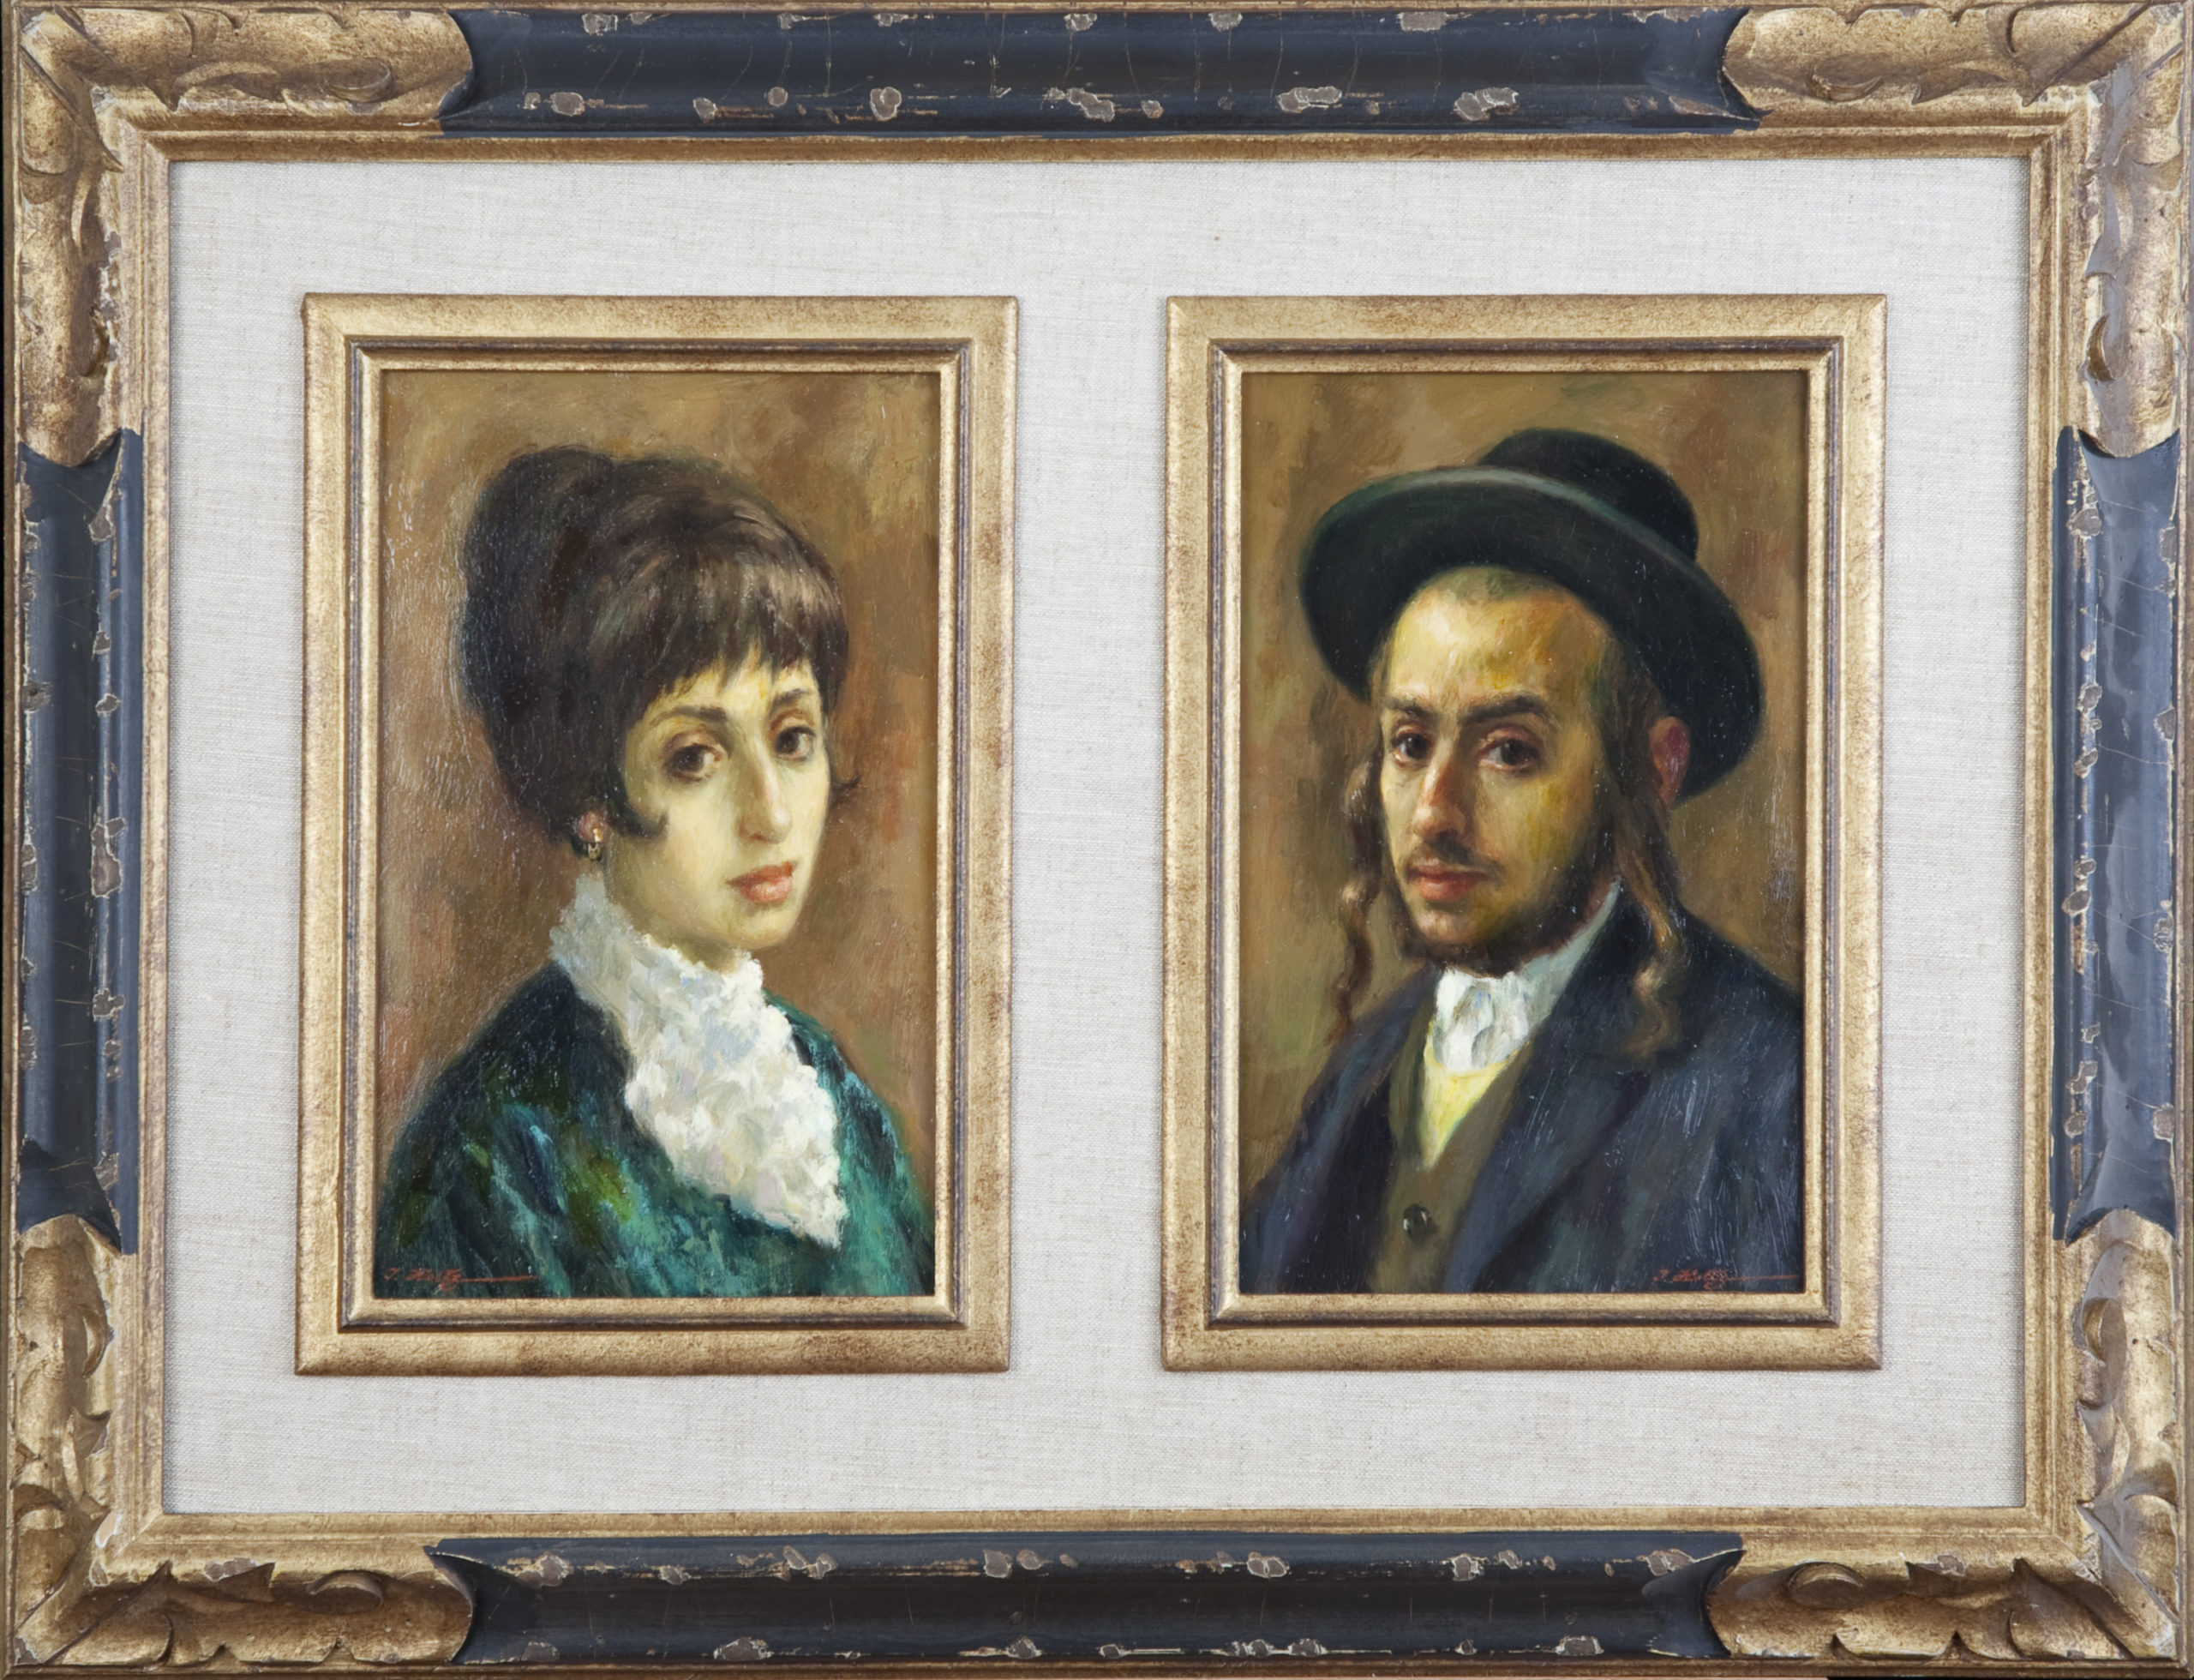 147 Chassidic Couple 1968 2 small pictures - Oil on Canvas - 6 x 10 - Frame: 23.25 x 17.75 x 1.5